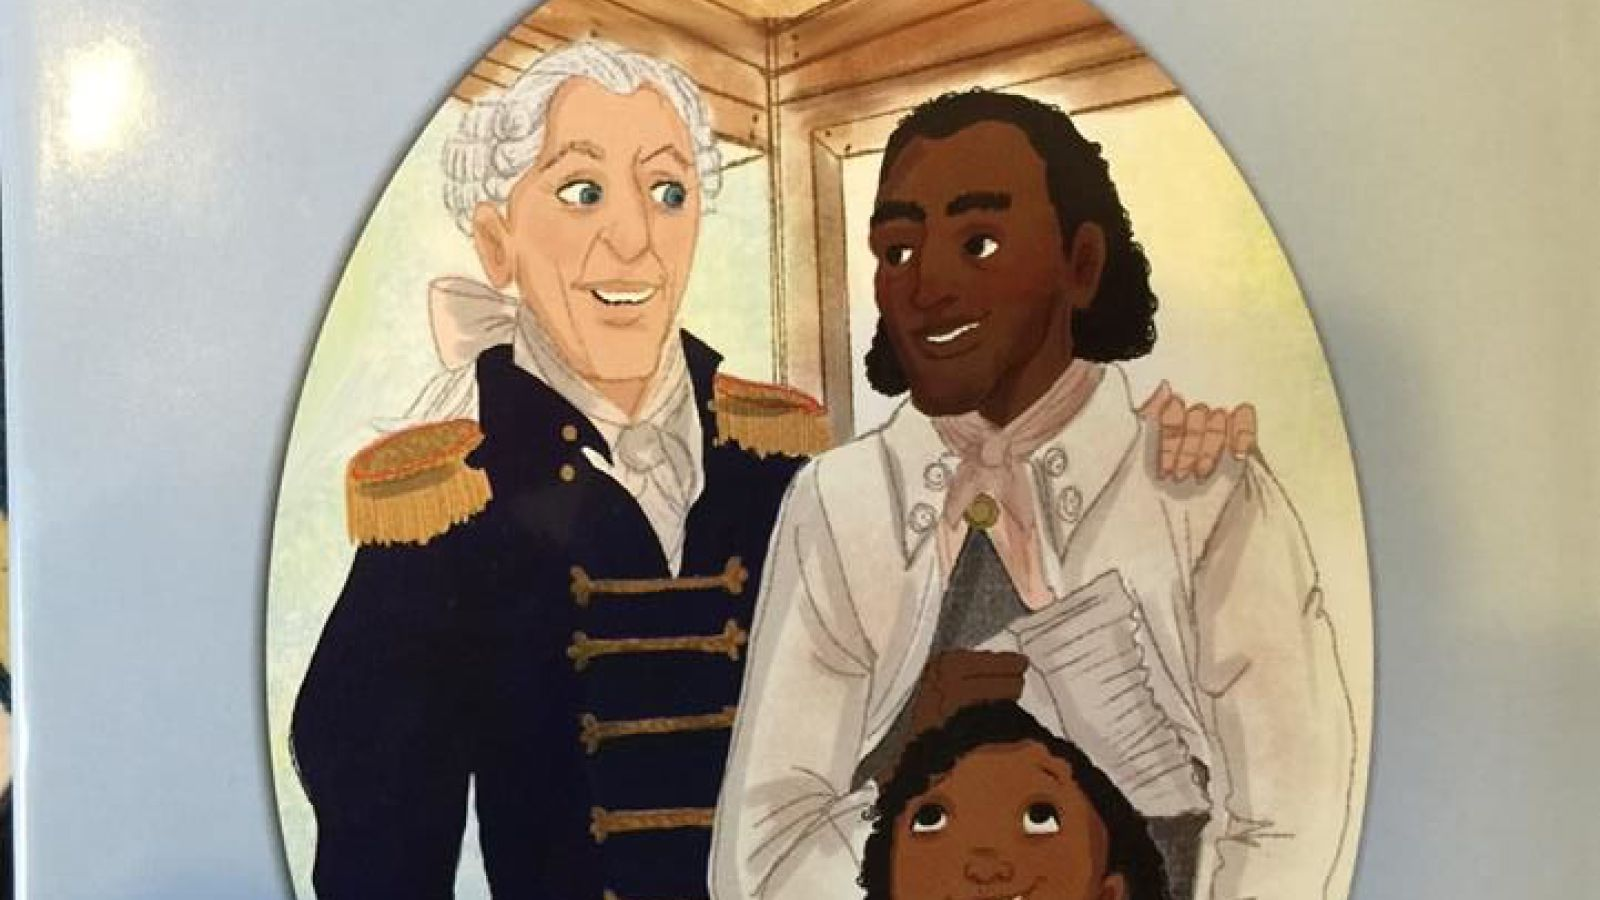 A Childrens Book About George Washington And His Slaves Is Getting